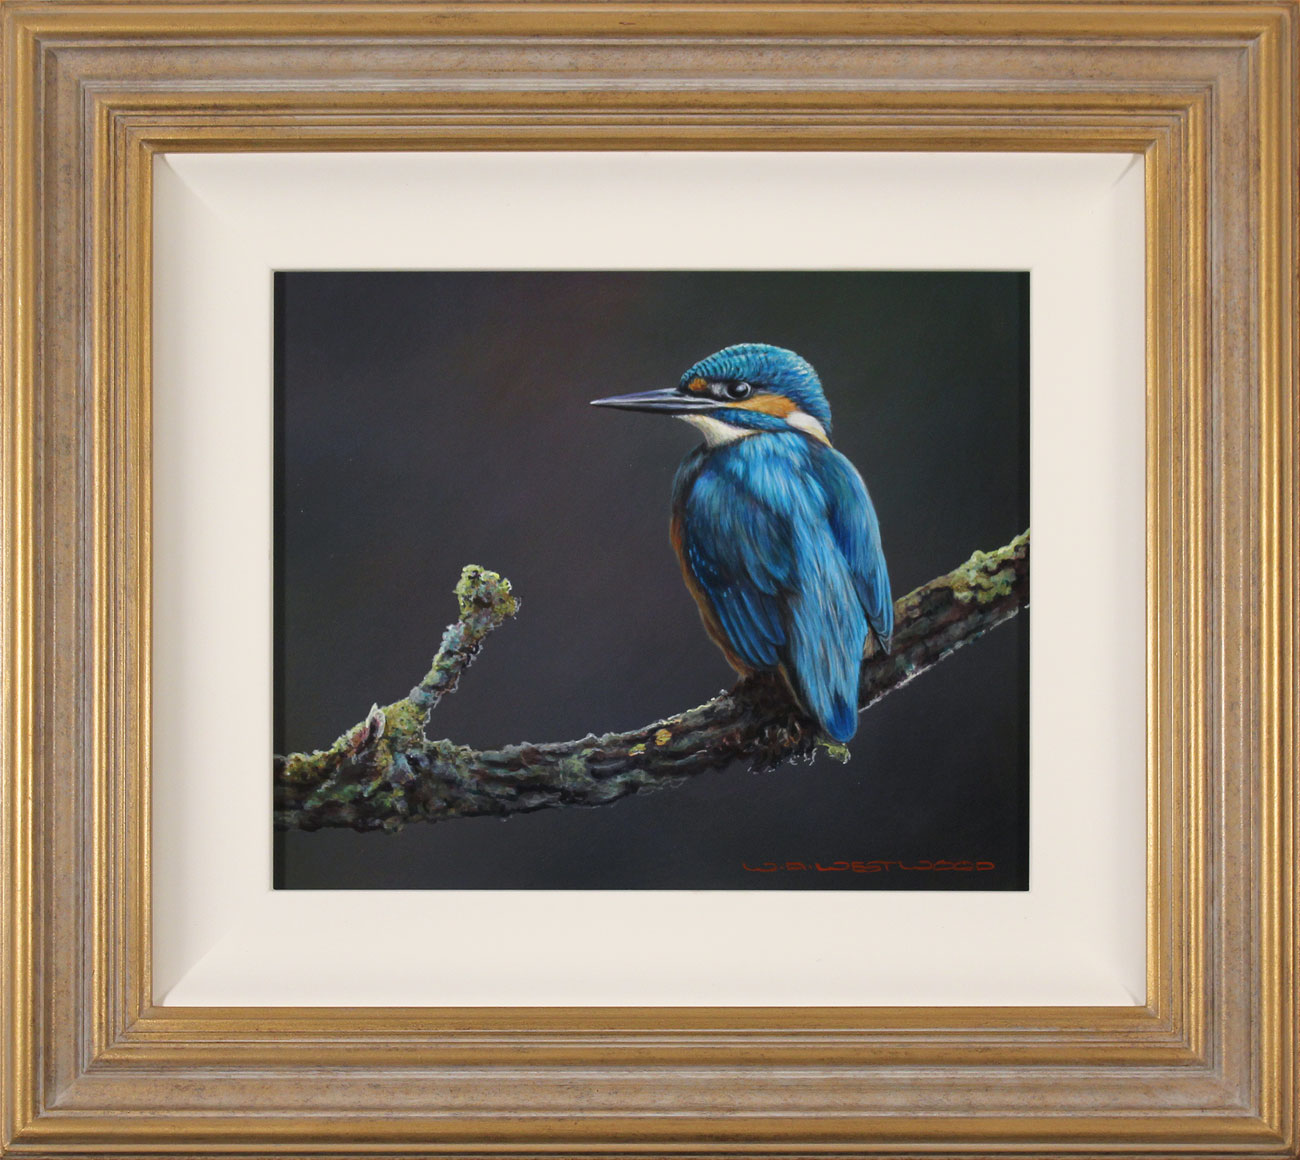 Wayne Westwood, Original oil painting on panel, Kingfisher. Click to enlarge